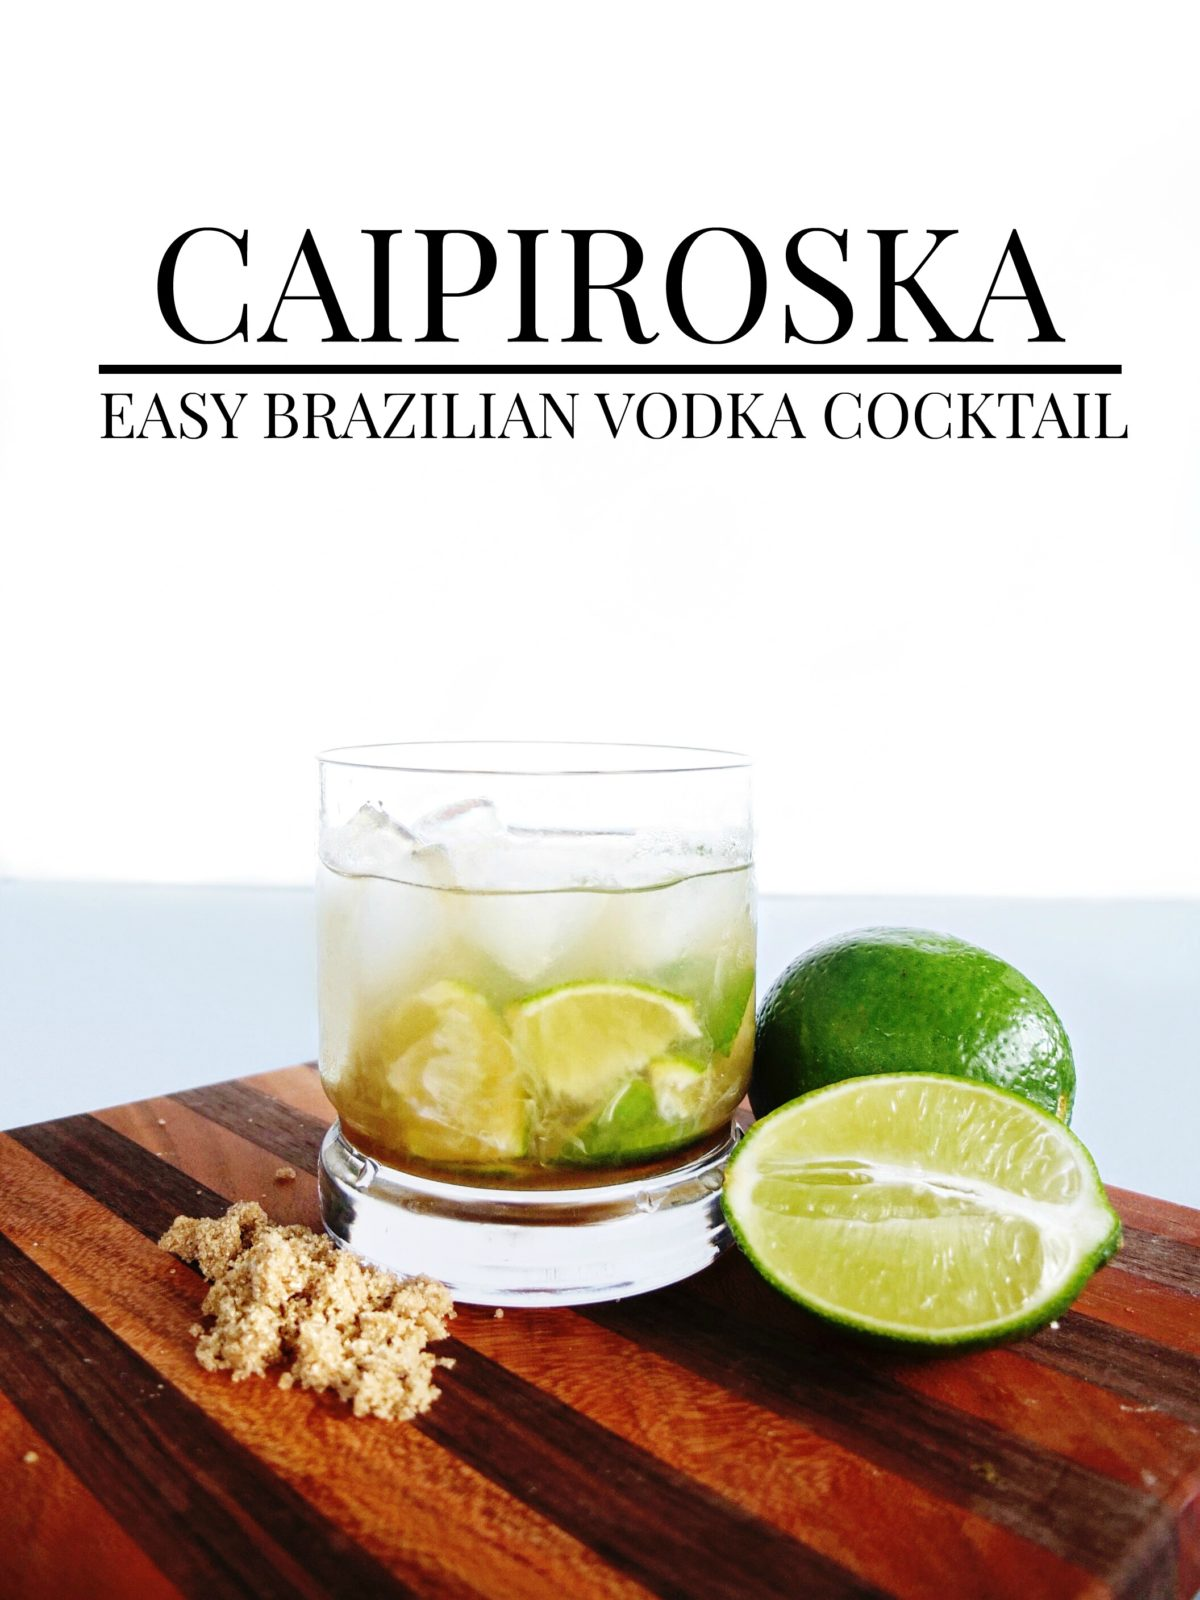 A super easy Brazilian cocktail recipe. This three-ingredient cocktail uses vodka, limes, and brown sugar to make a lite vodka cocktail that is a low-calorie cocktail and perfect to celebrate the Olympics with. // www.ElleTalk.com